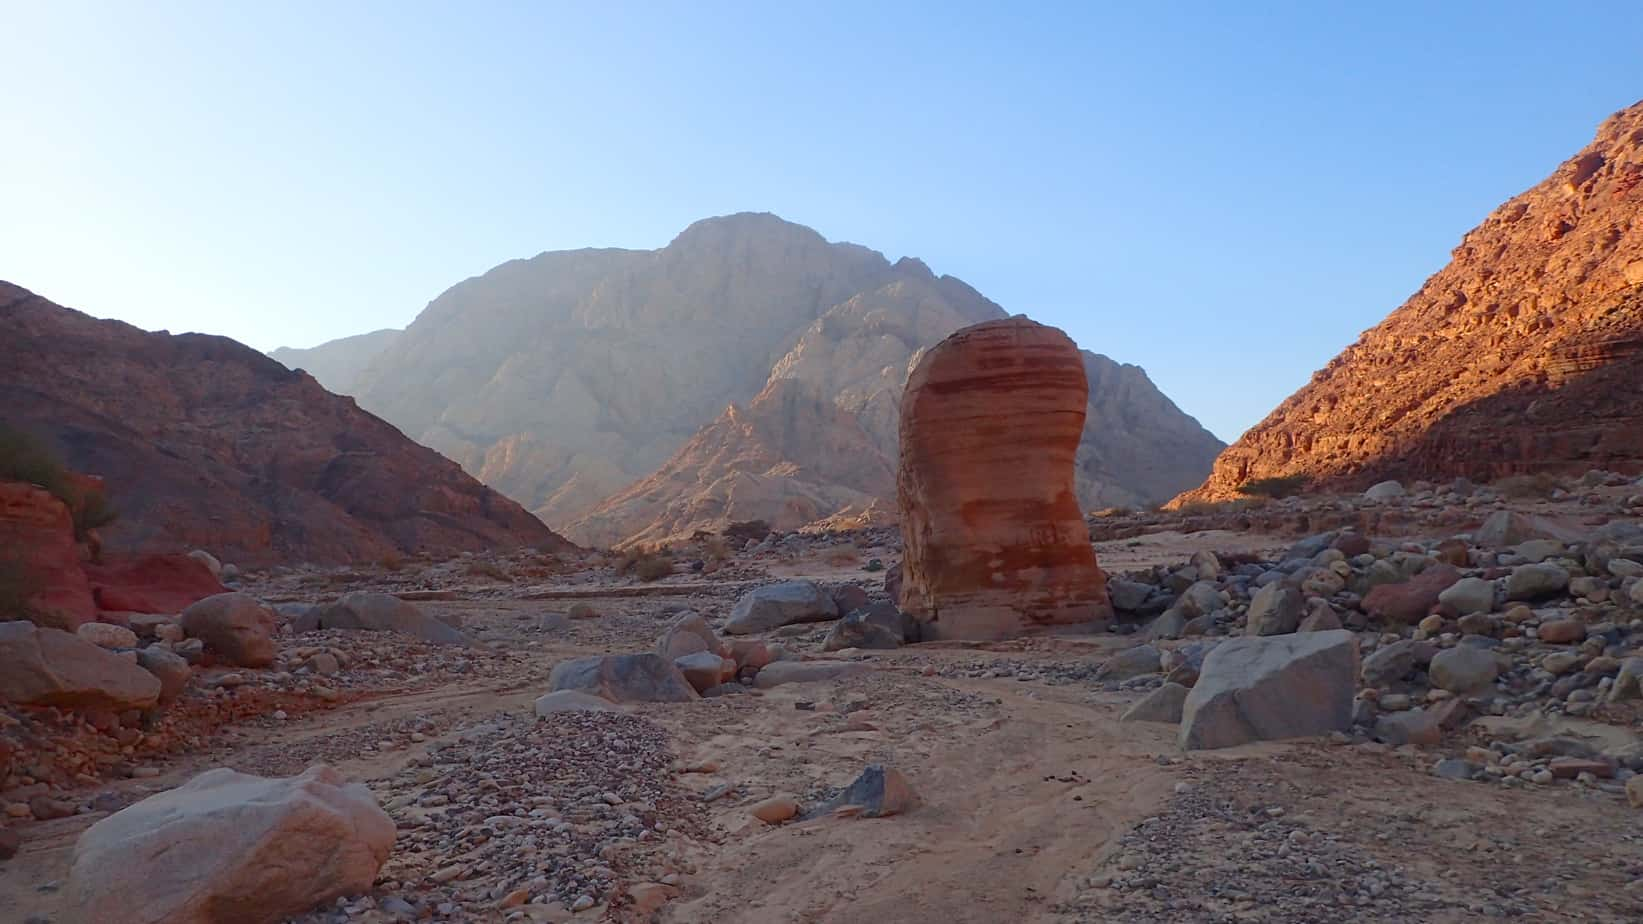 Hiking in Wadi Rum